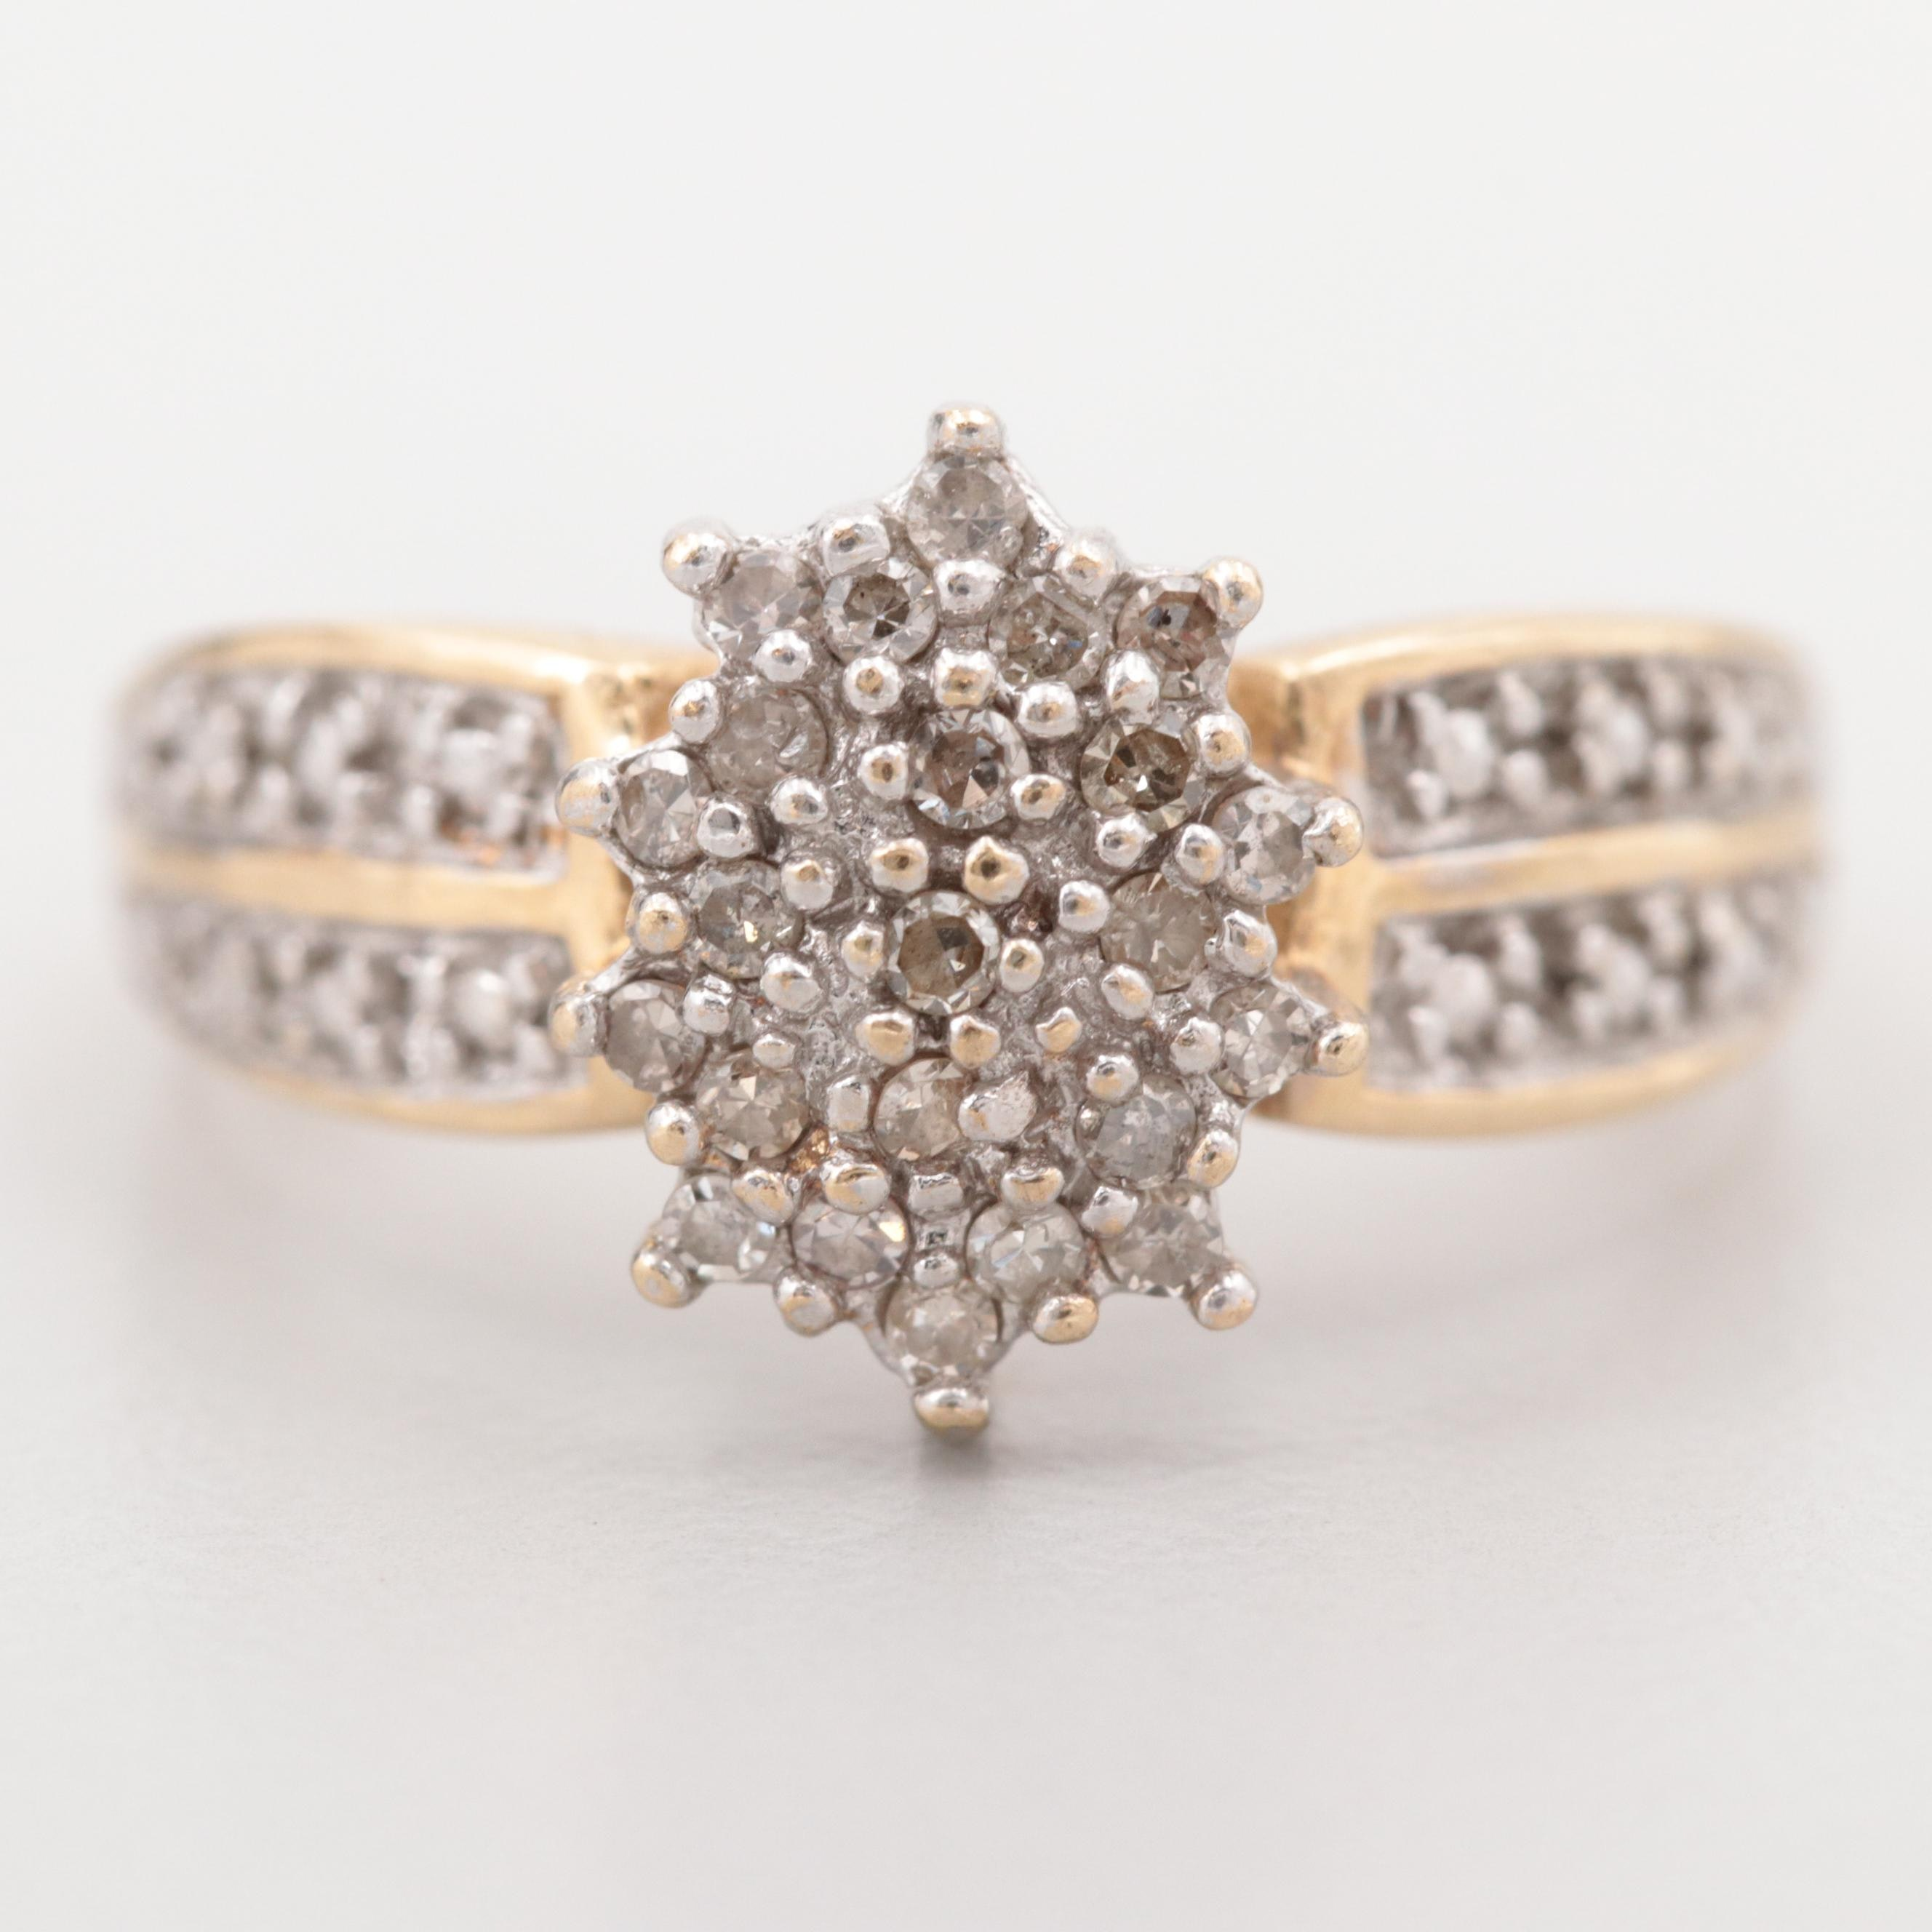 10K Yellow Gold Diamond Cluster Ring with White Gold Accents